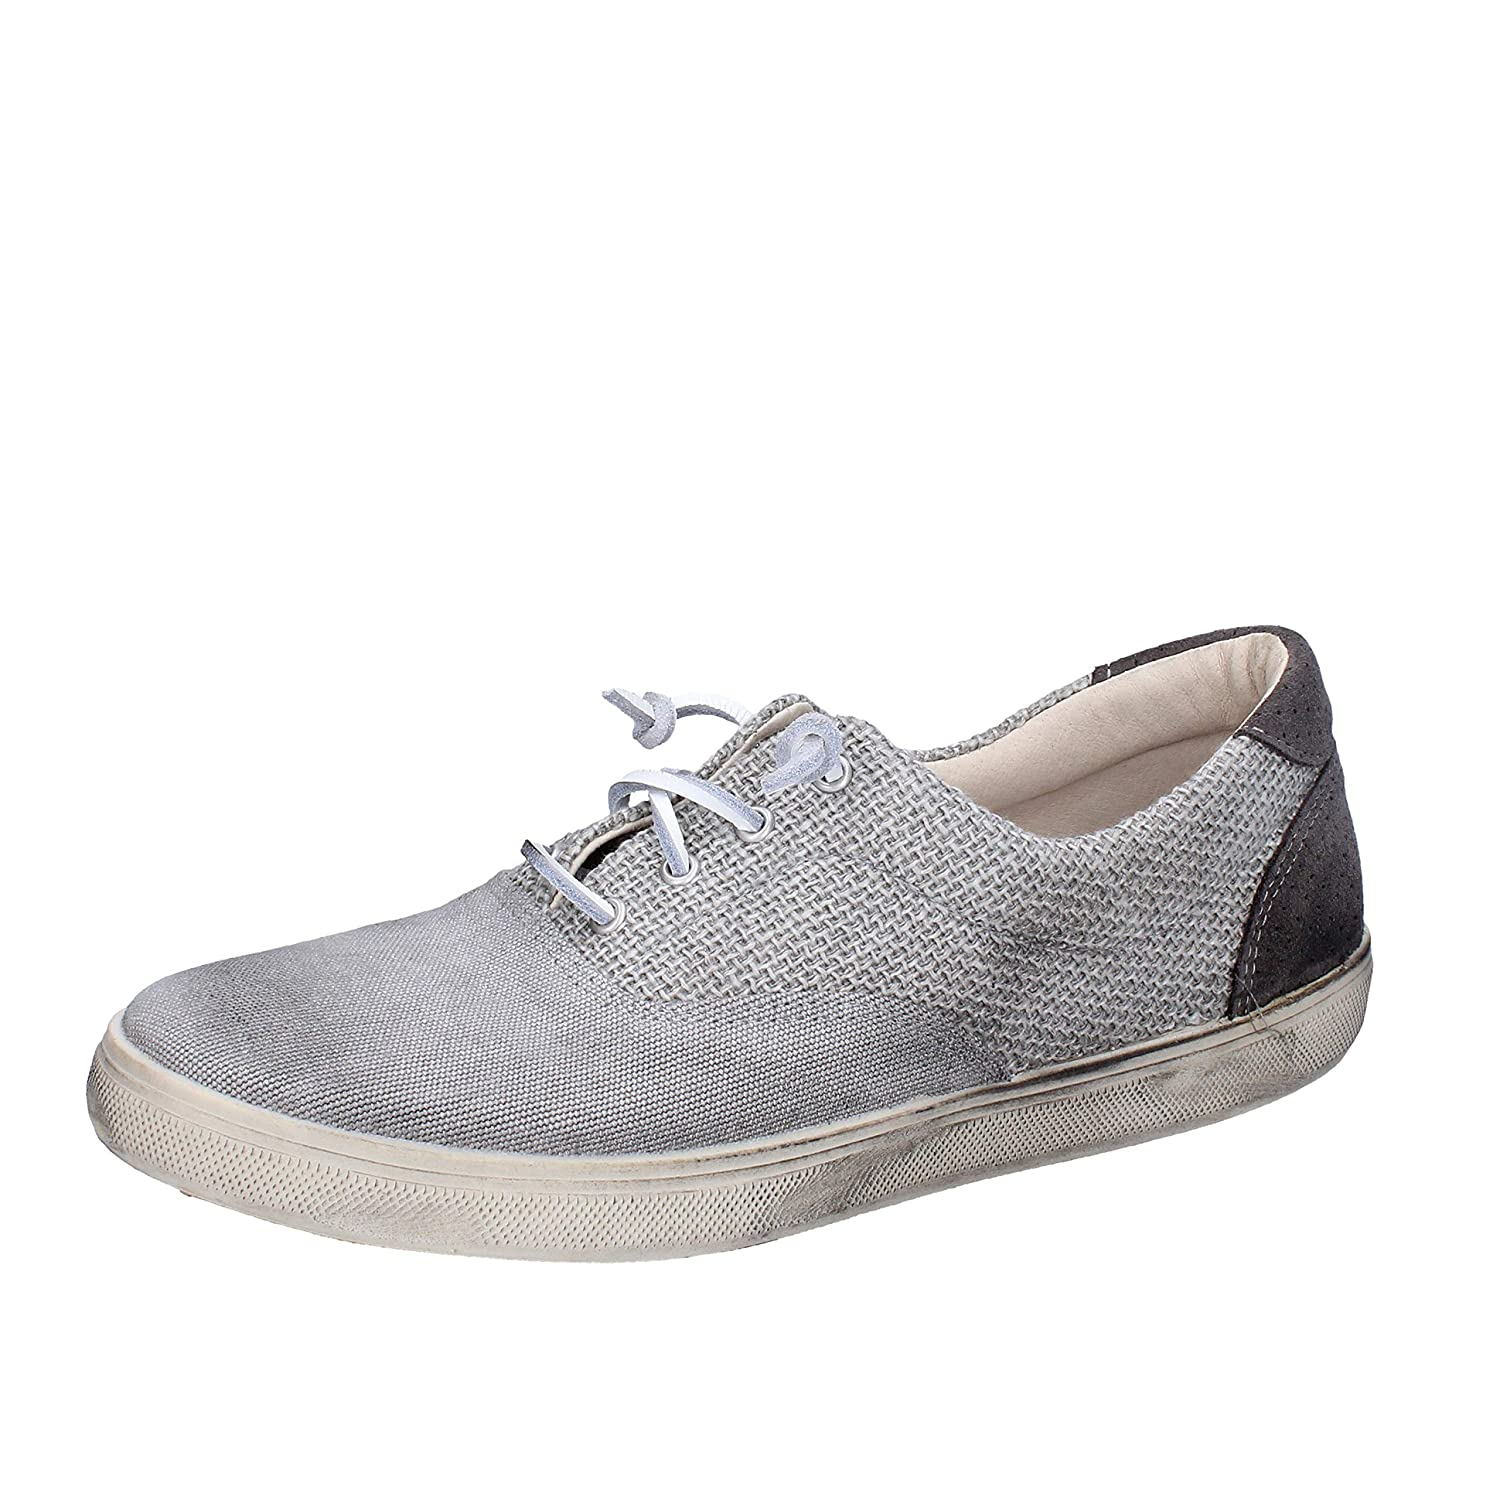 BEVERLY HILLS POLO CLUB Sneakers Hombre Lona Gris 42 EU: Amazon.es ...